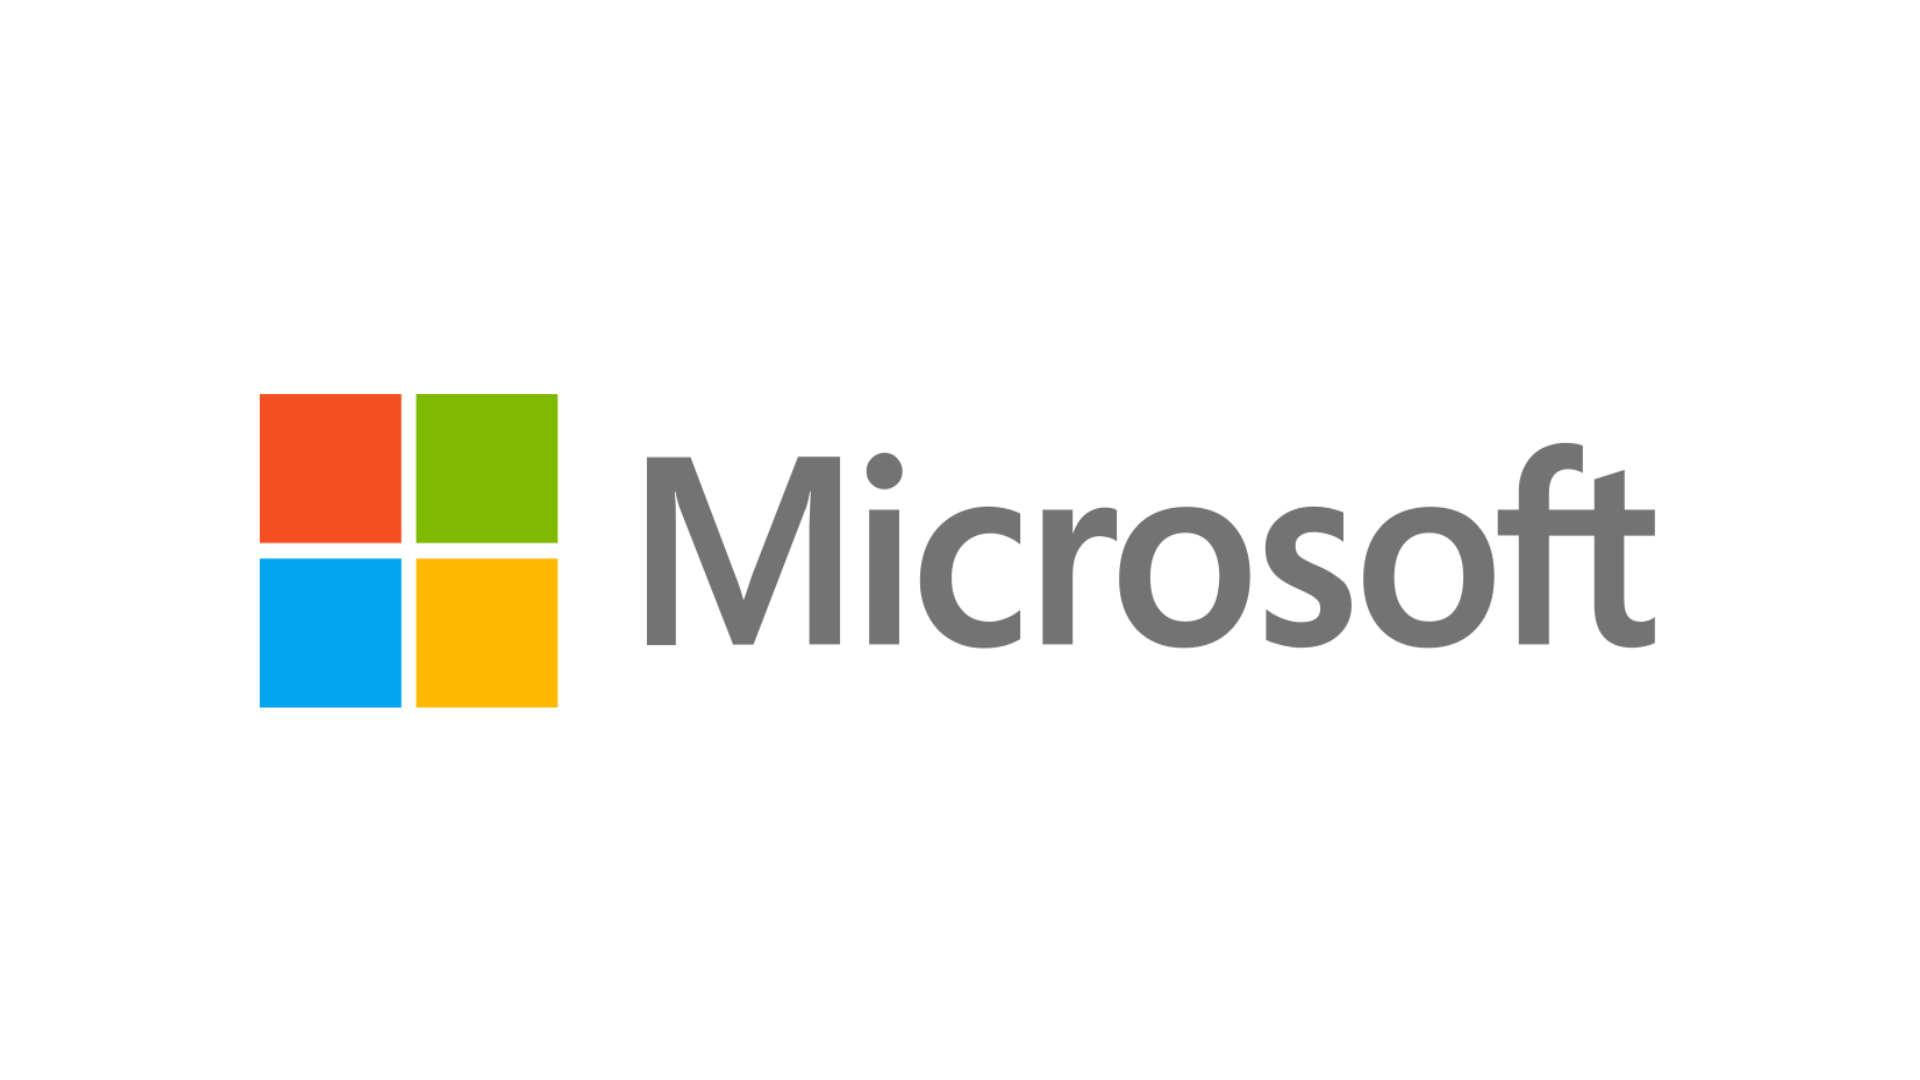 24.2.2021 – Microsoft ISV Conference: Partnering with Microsoft. Speziell für StartUps & Software Entwickler